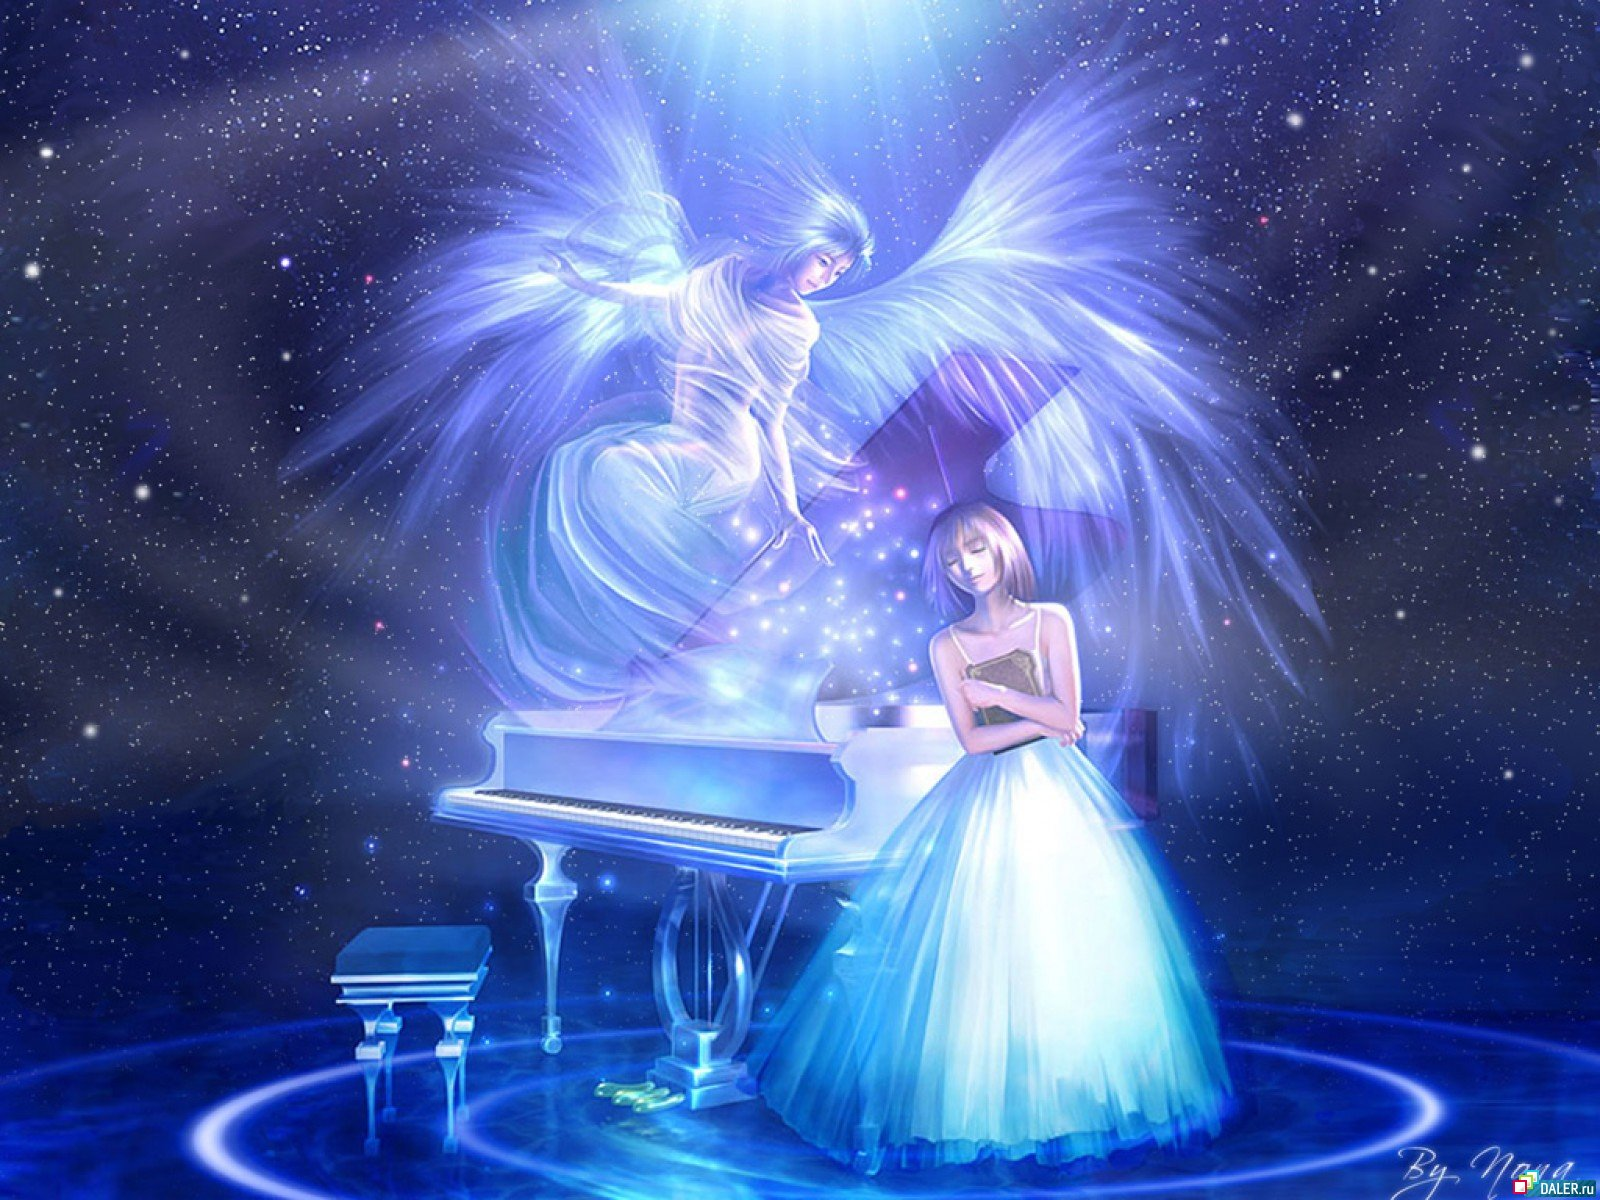 angel from heaven - photo #14